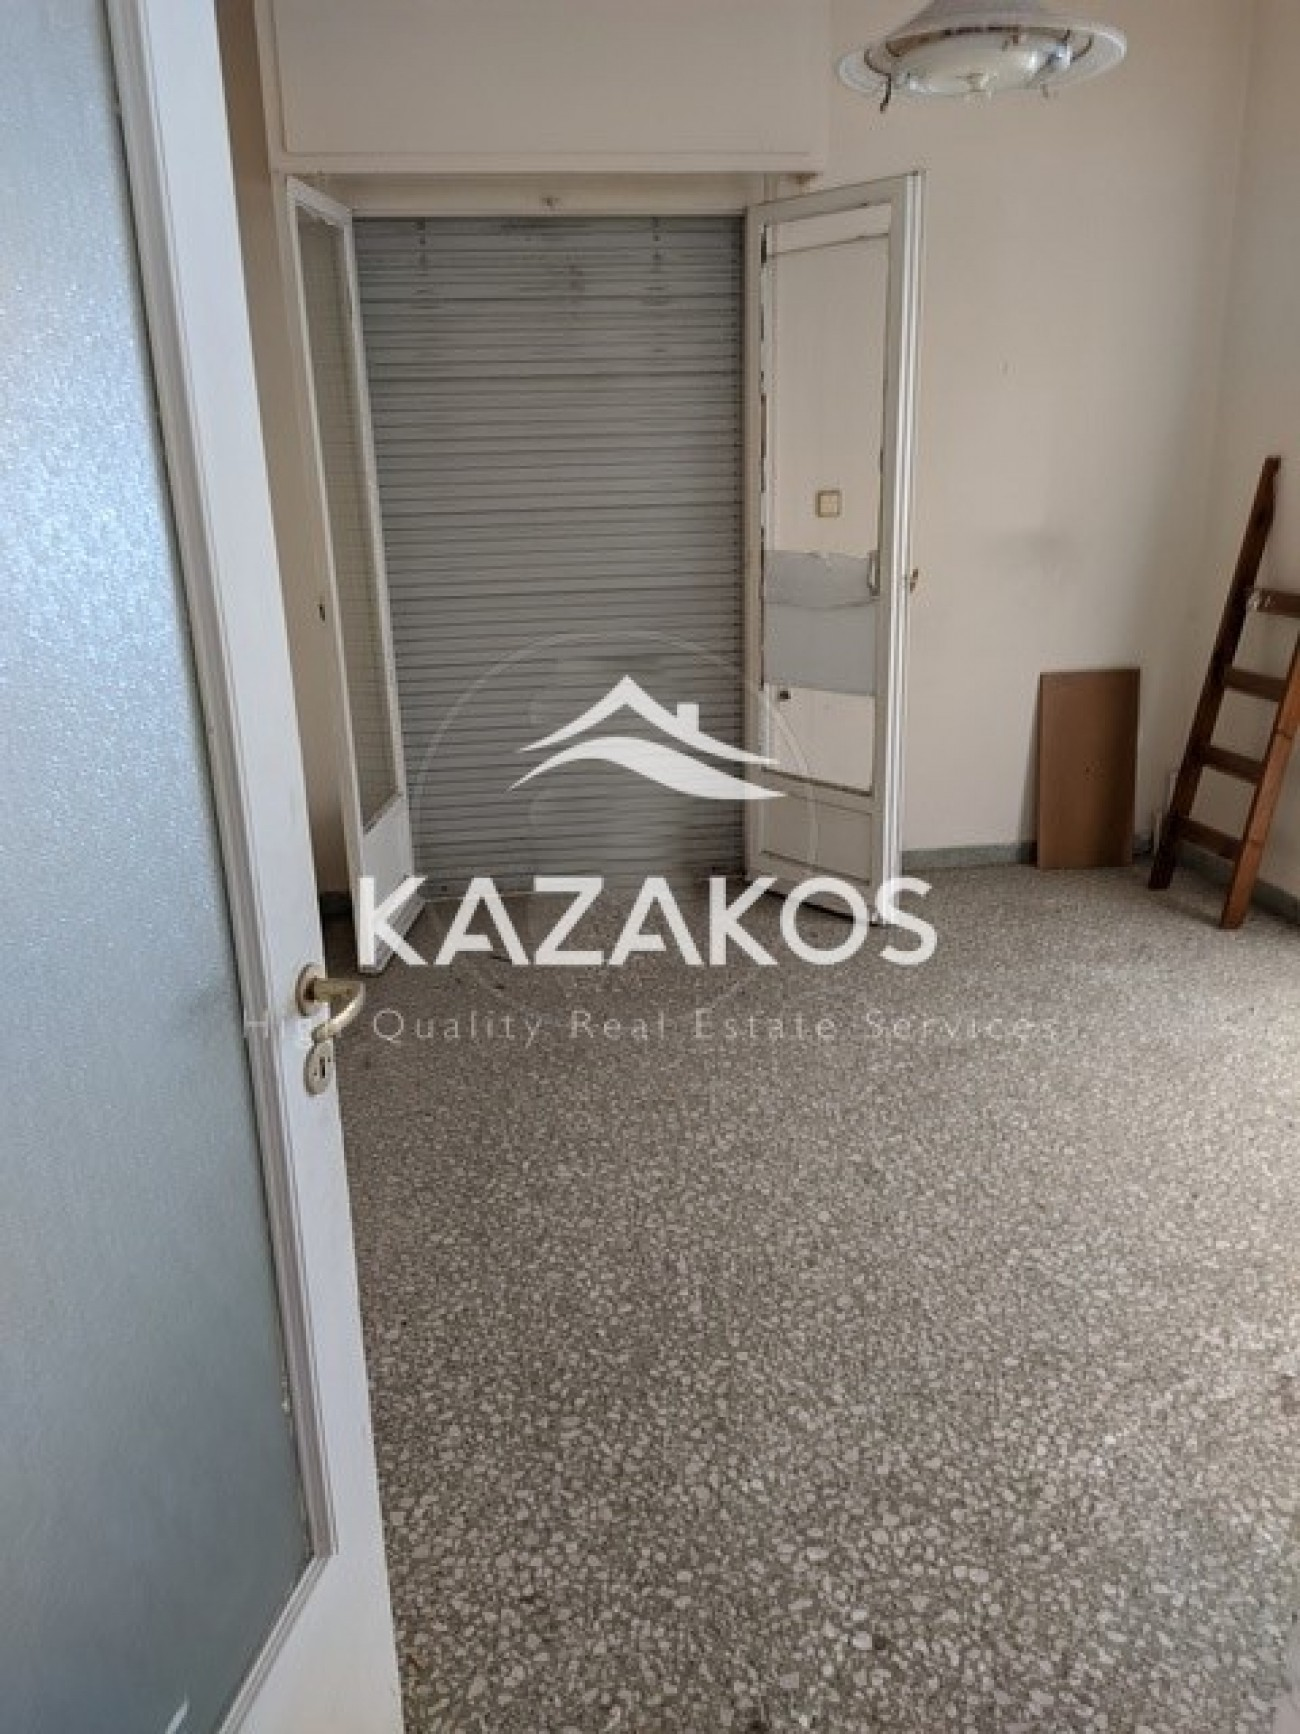 Apartment for Sale in Kolwnos, Athens City Center, Greece